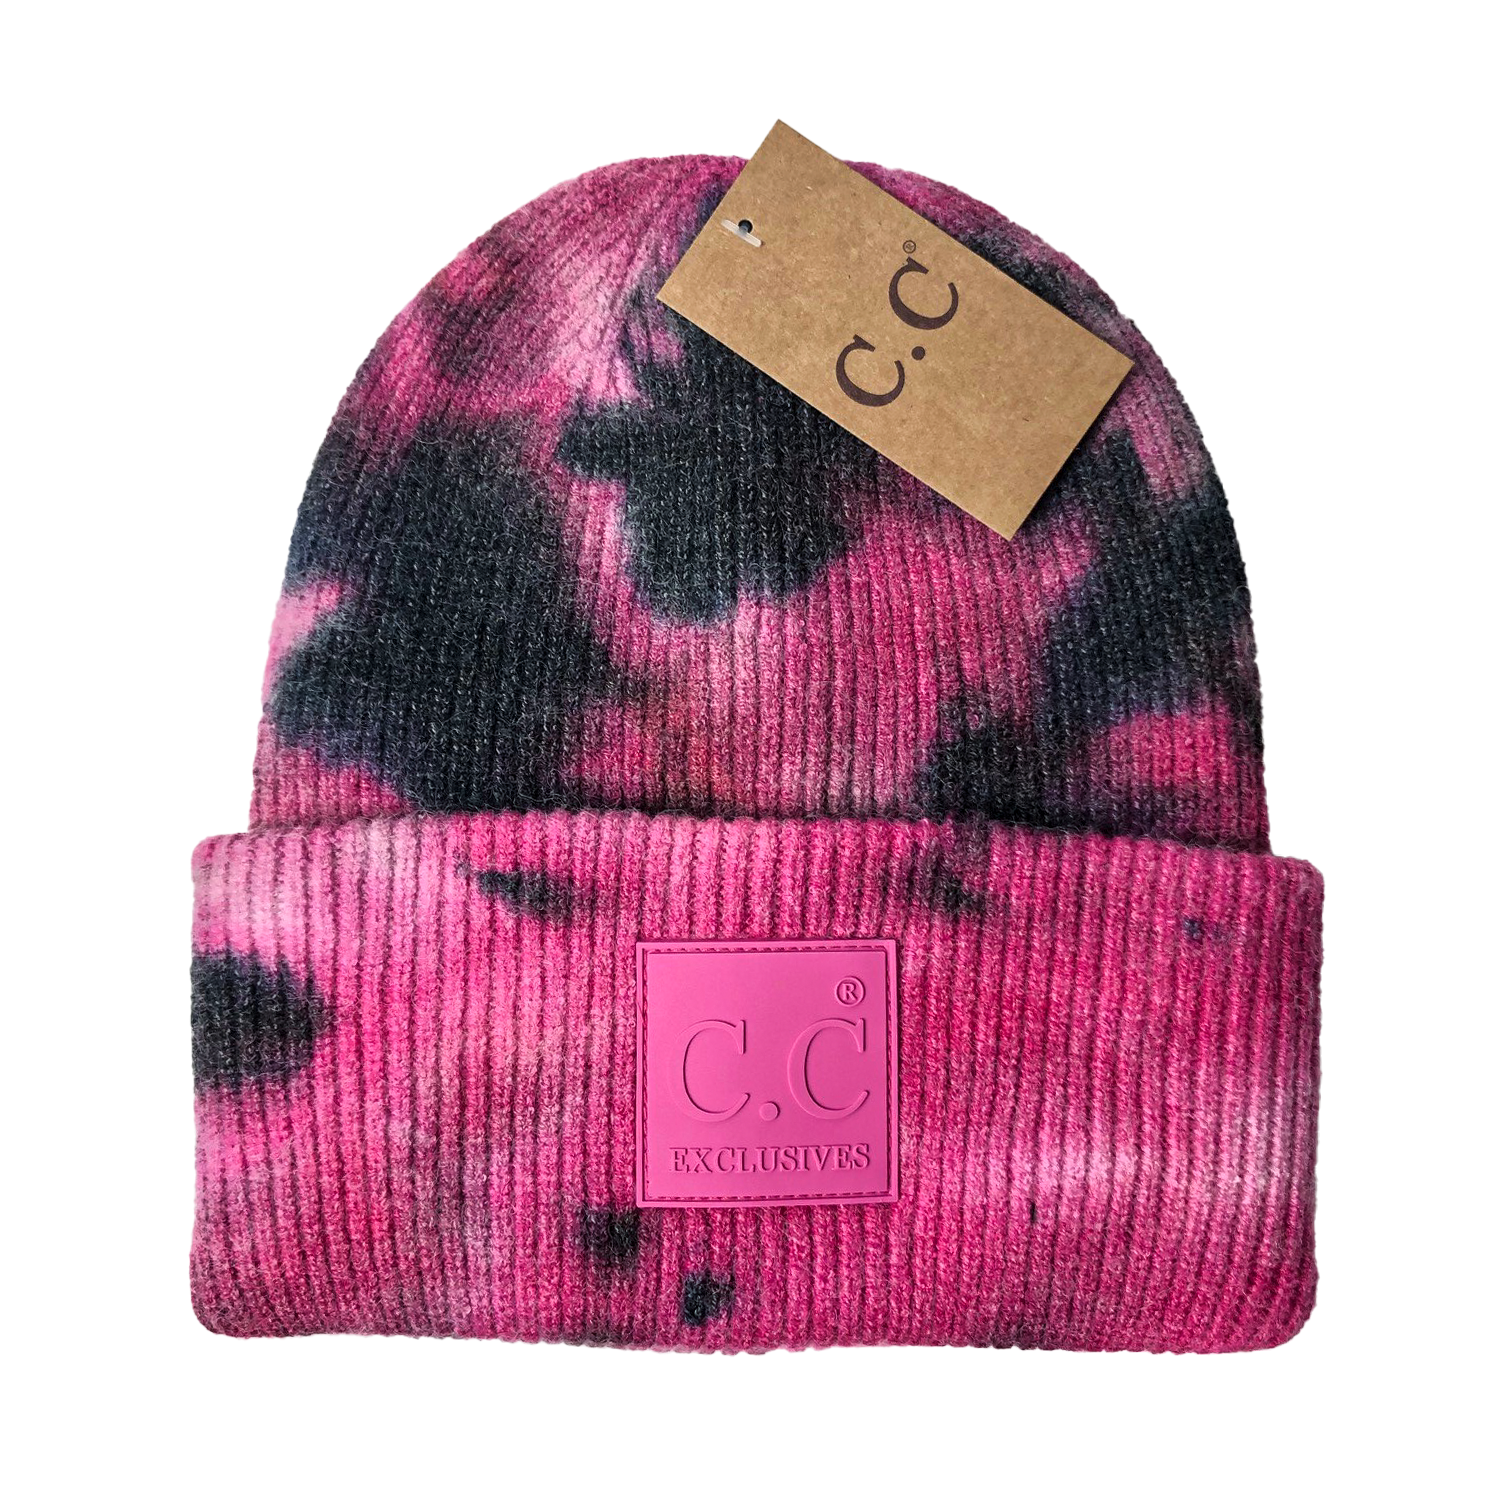 HAT-7380 Tie Dye Beanie with C.C Rubber Patch - Black/Hot Pink